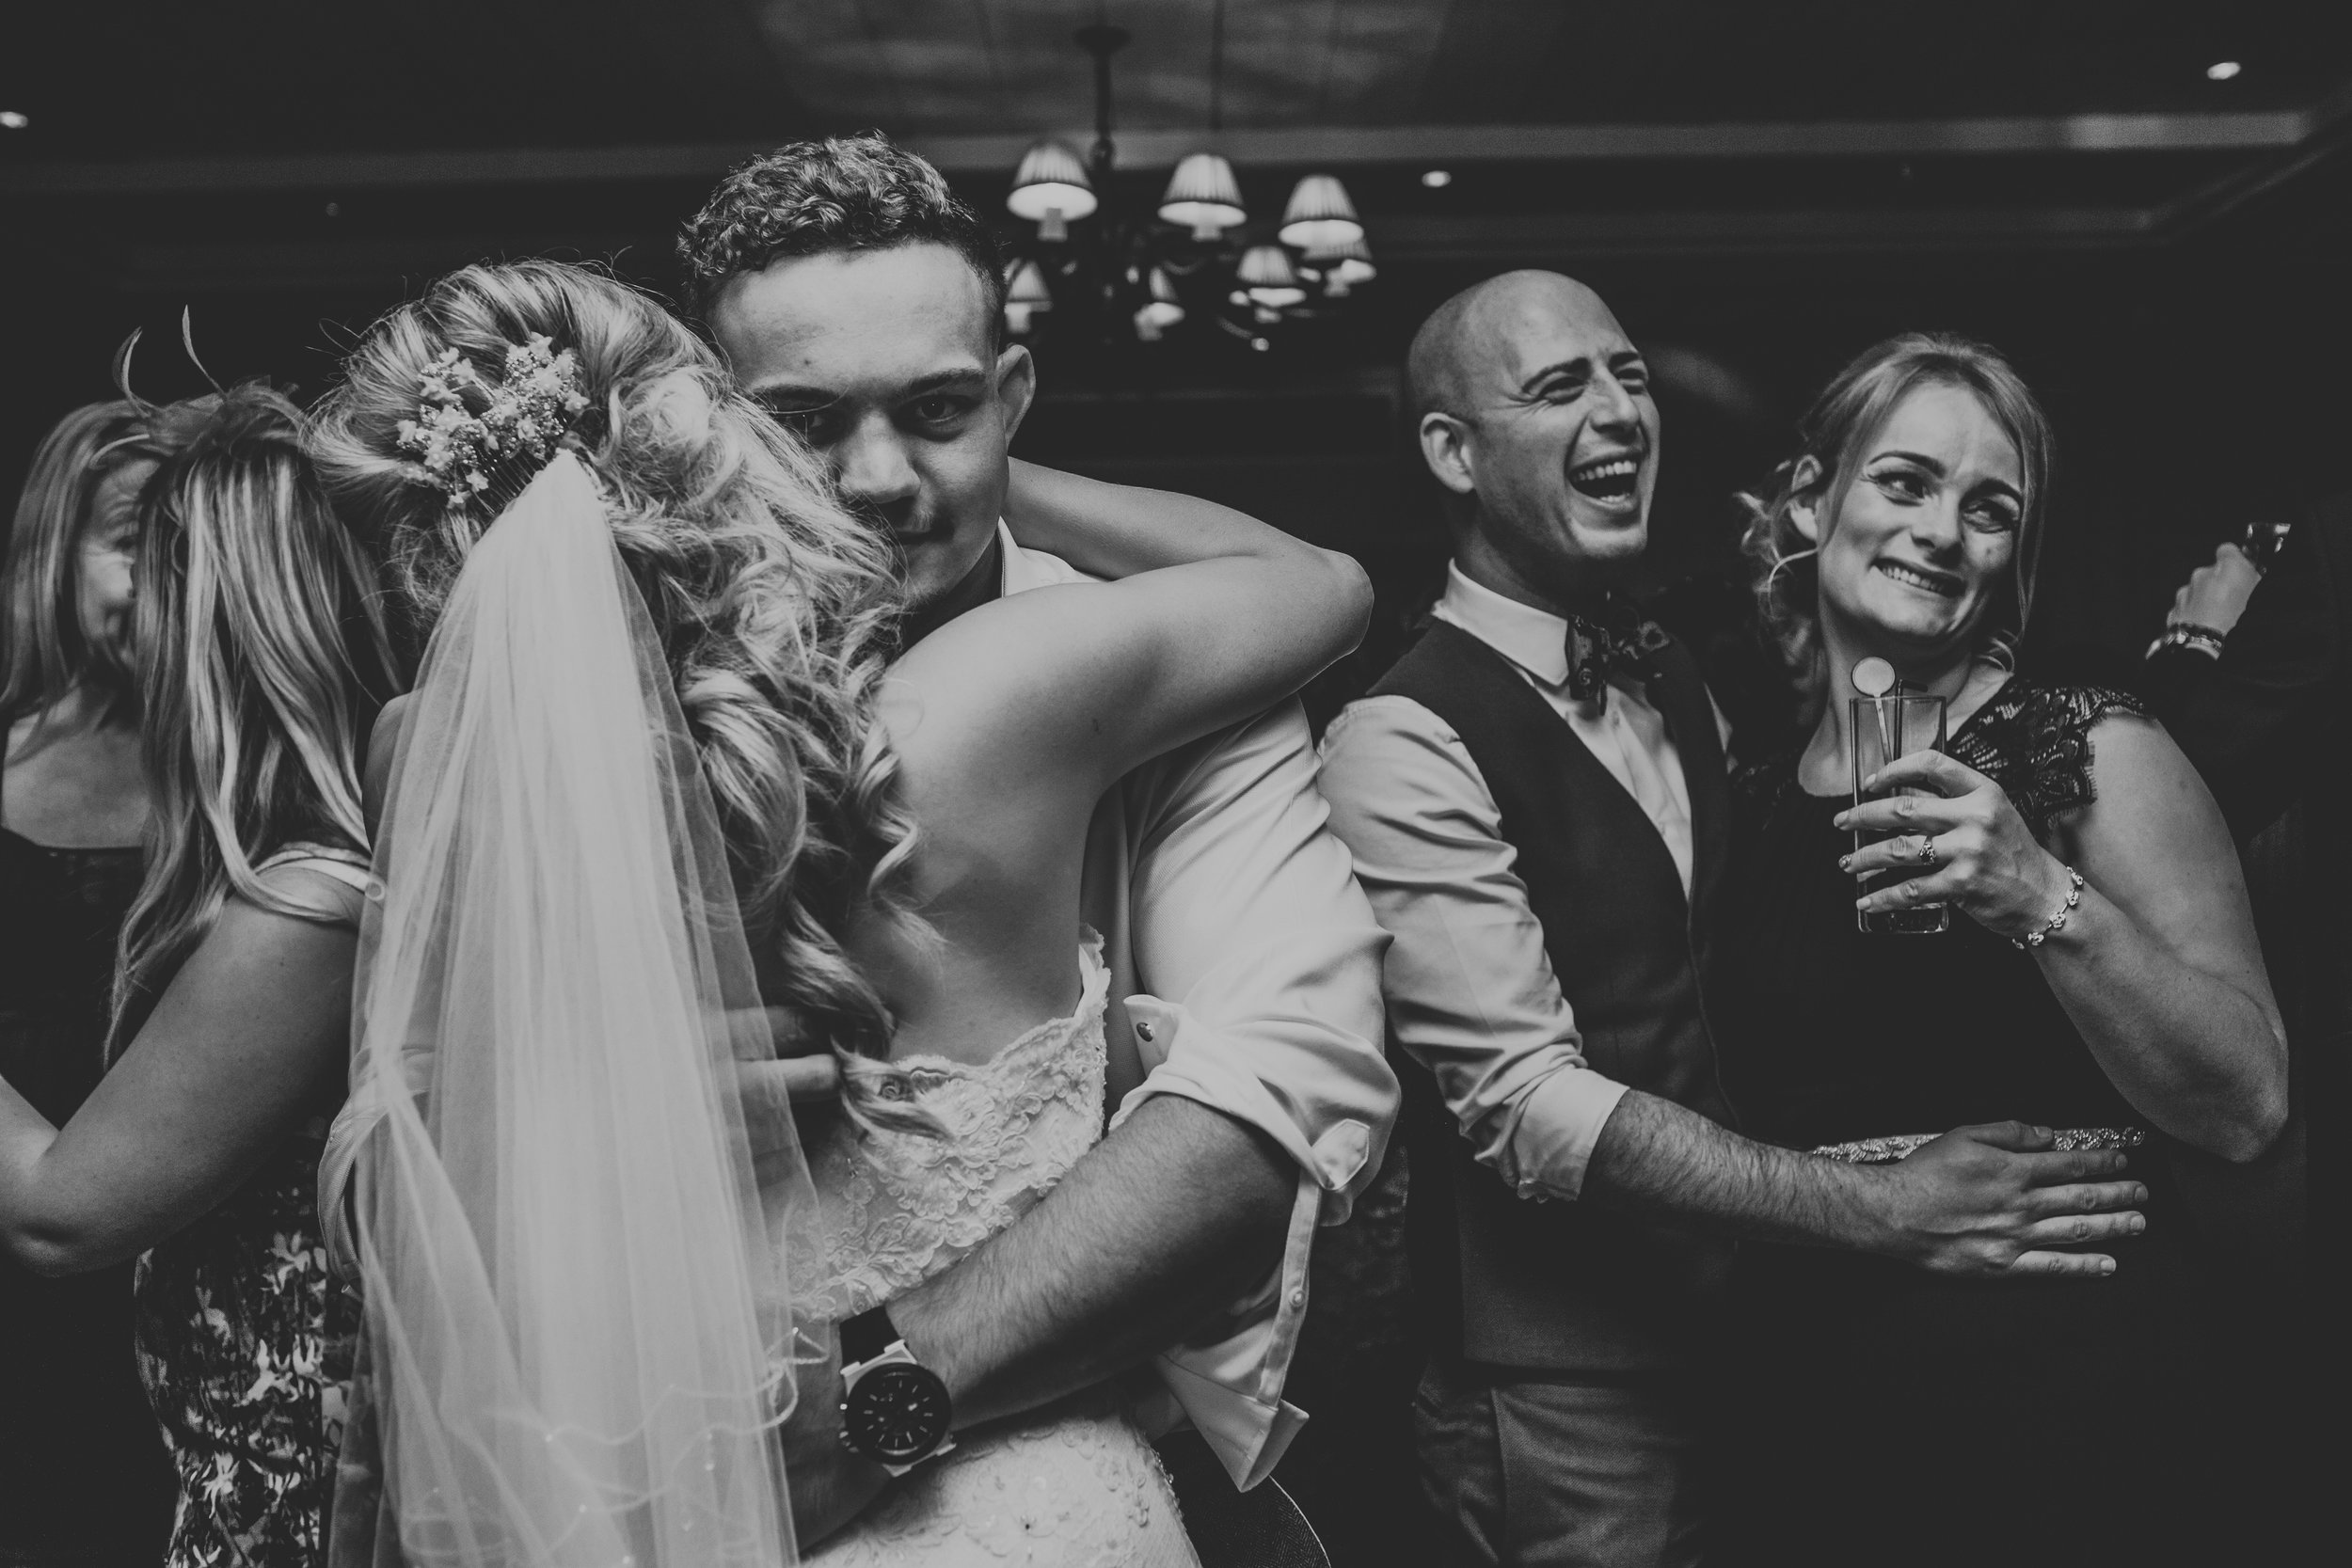 Bride and groom embrace on dance floor as guests laugh in the back ground.